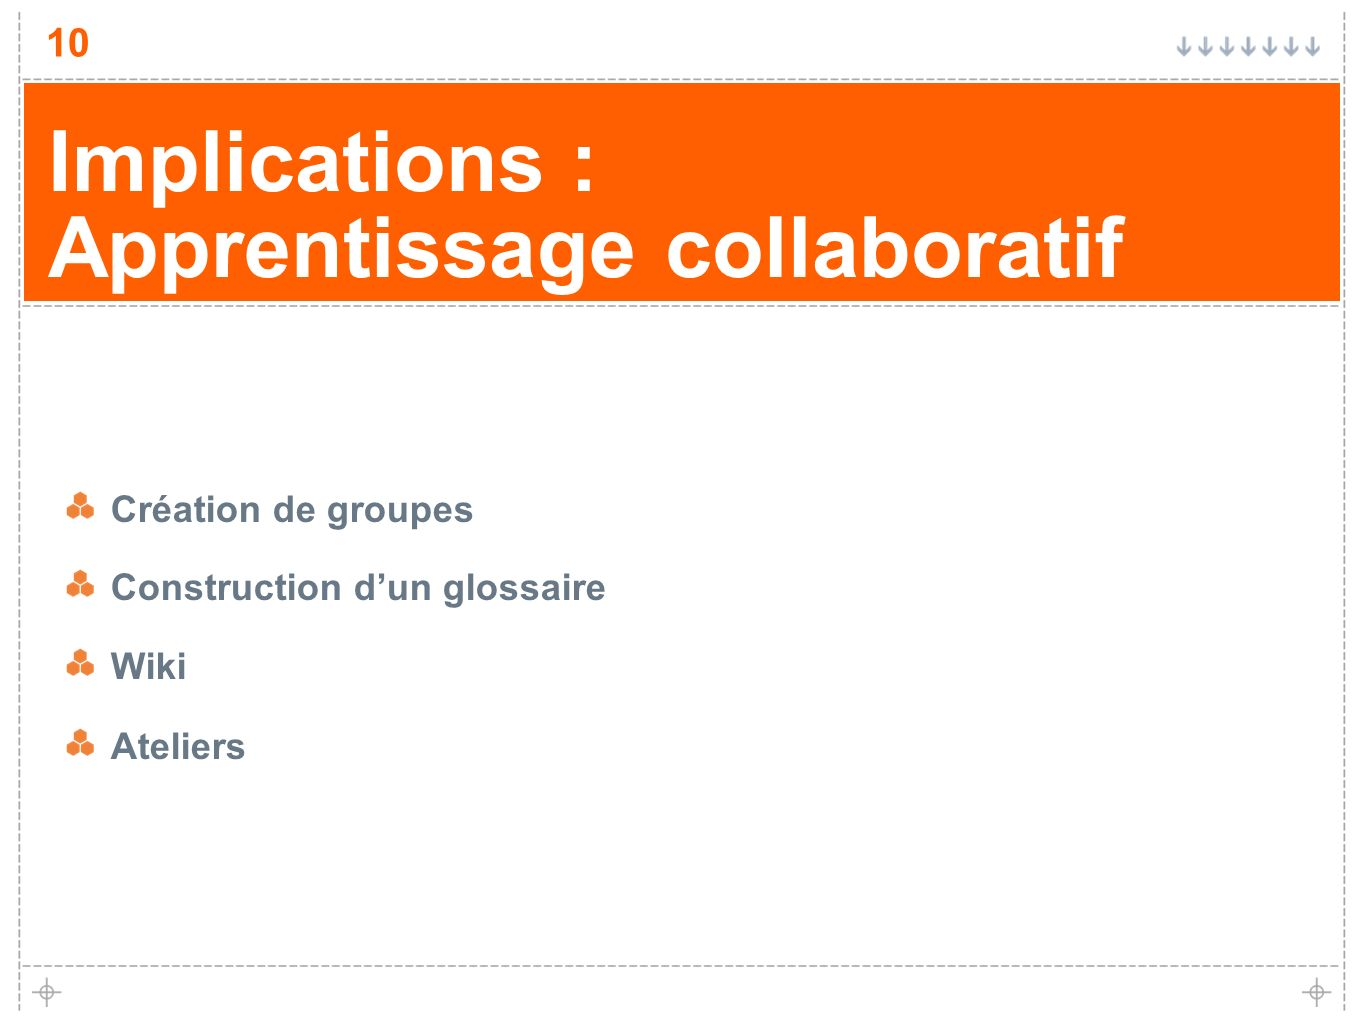 Implications : Apprentissage collaboratif